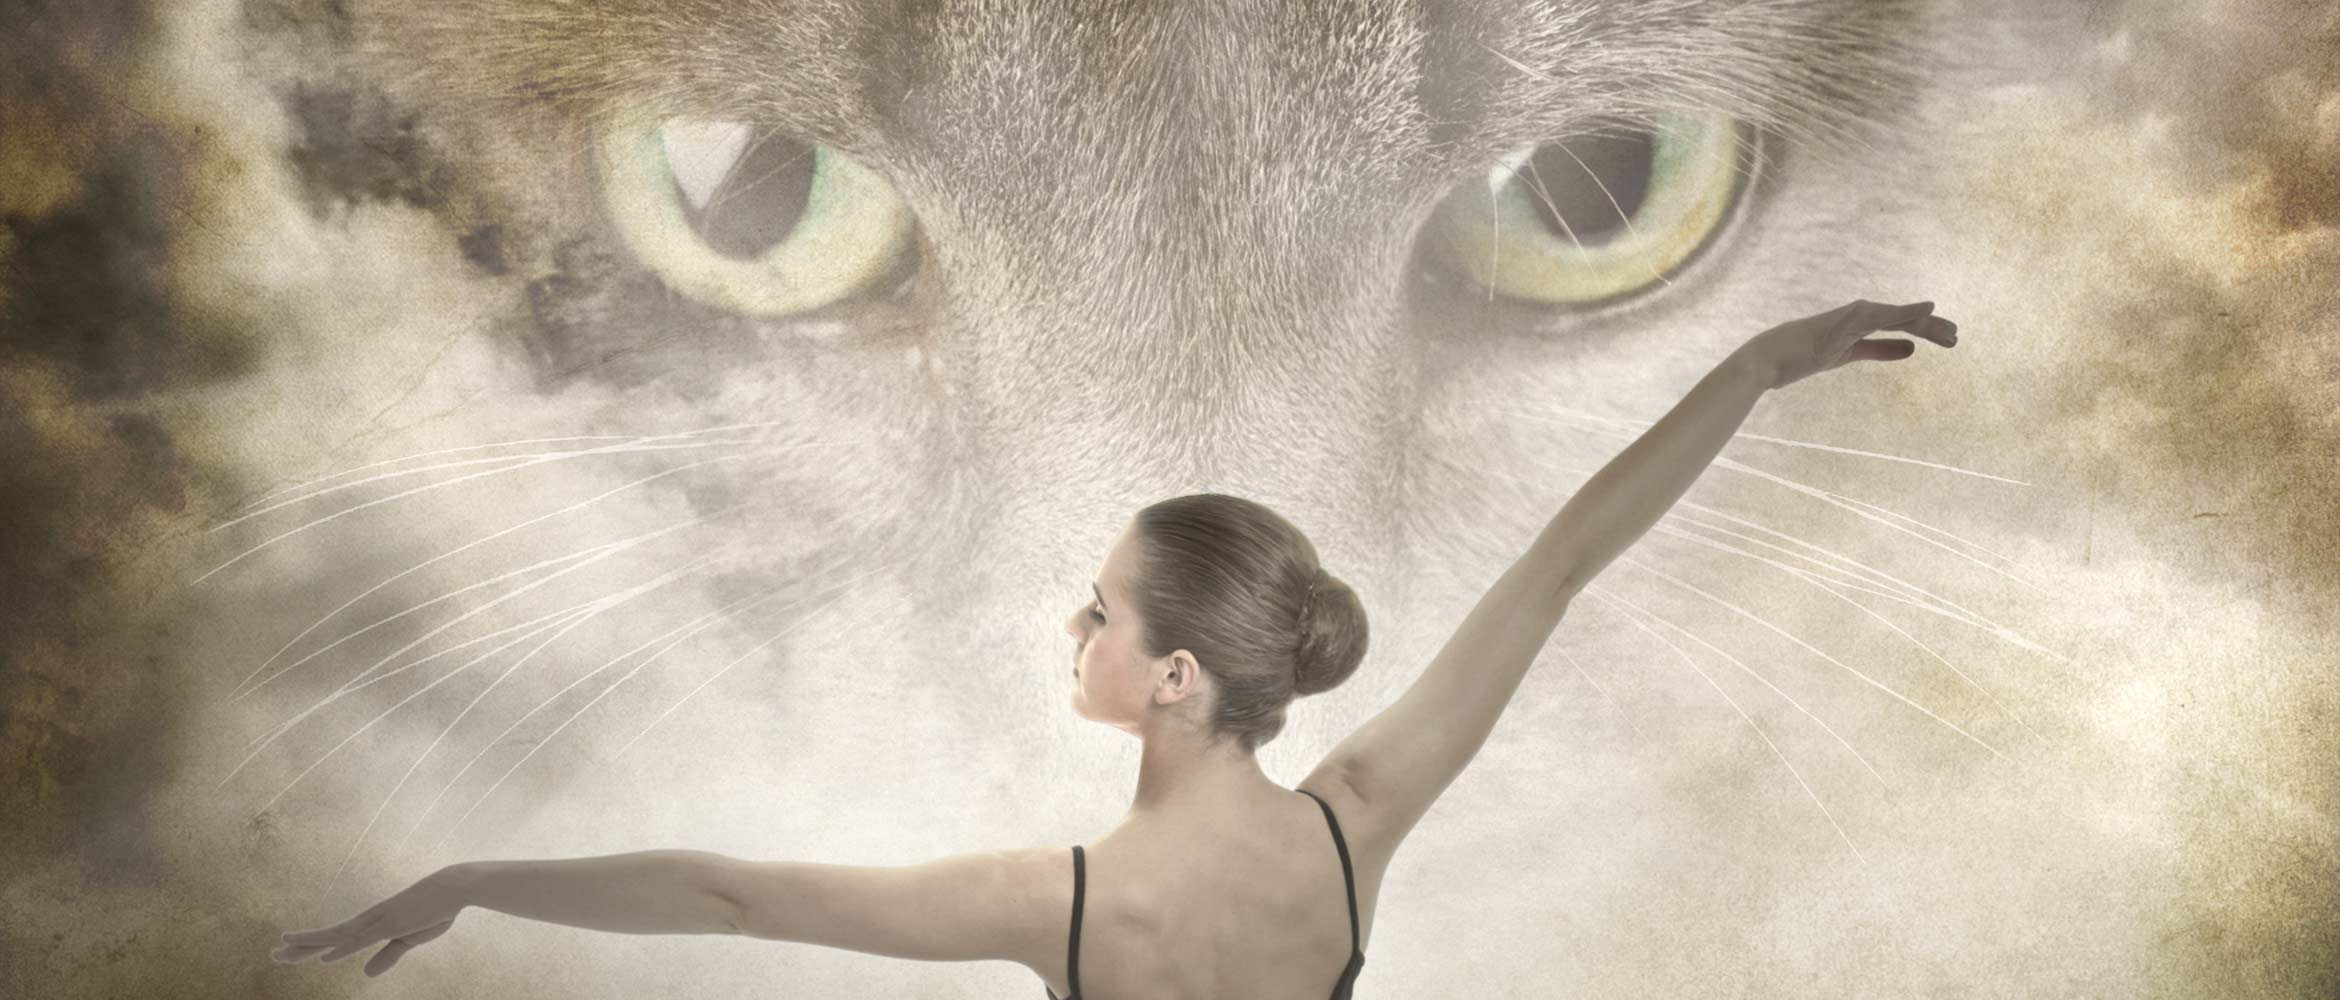 Portion of our Flyer for our 2014 production showing ballerina and Mowzer Cat. © Duchy Ballet